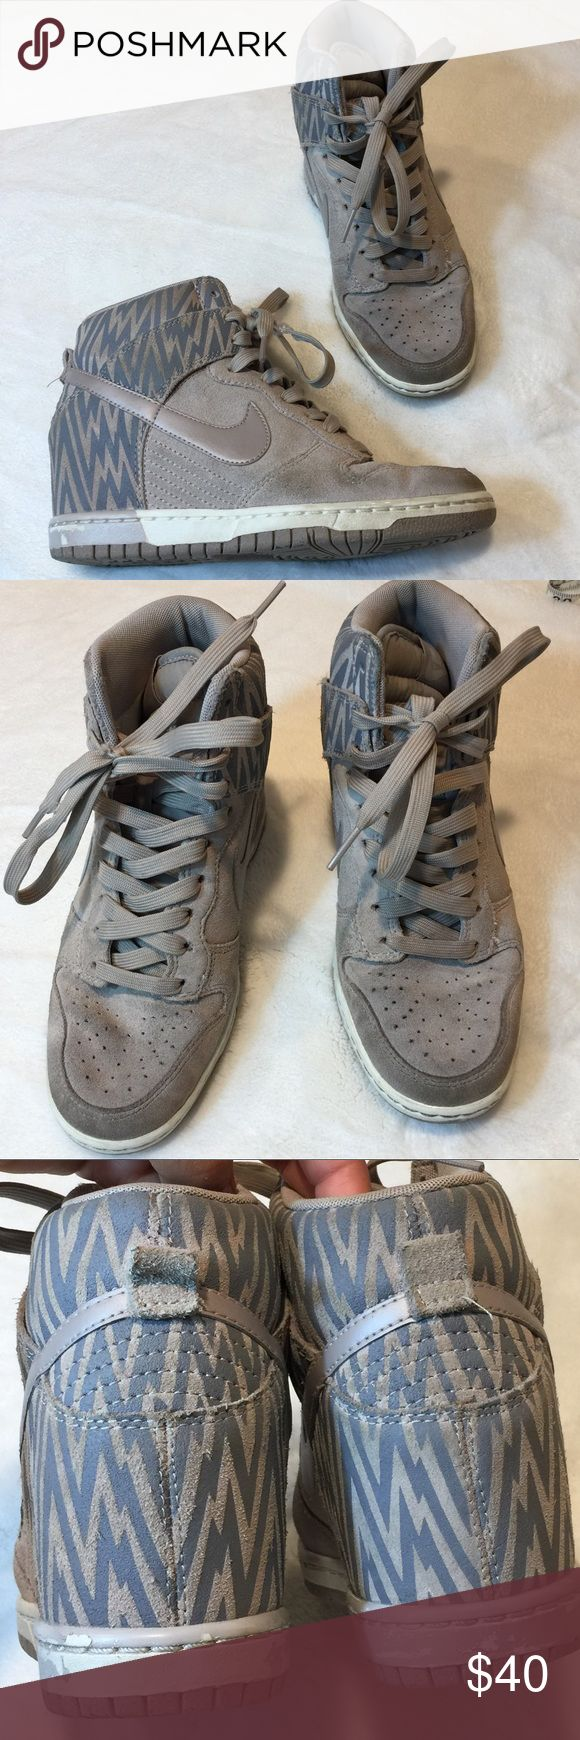 Women's Nike grey wedge sneakers💚 In overall good condition with normal wear.  Does have some dirt stain or slight discoloration in the suede.    Please enlarge photos for close ups. Possibly can be washed off with mild soap💙 has tearing in one shoelace that can easily be replaced.  🌼🌼 please note that first picture is for styling purposes🌼🌼 Nike Shoes Sneakers